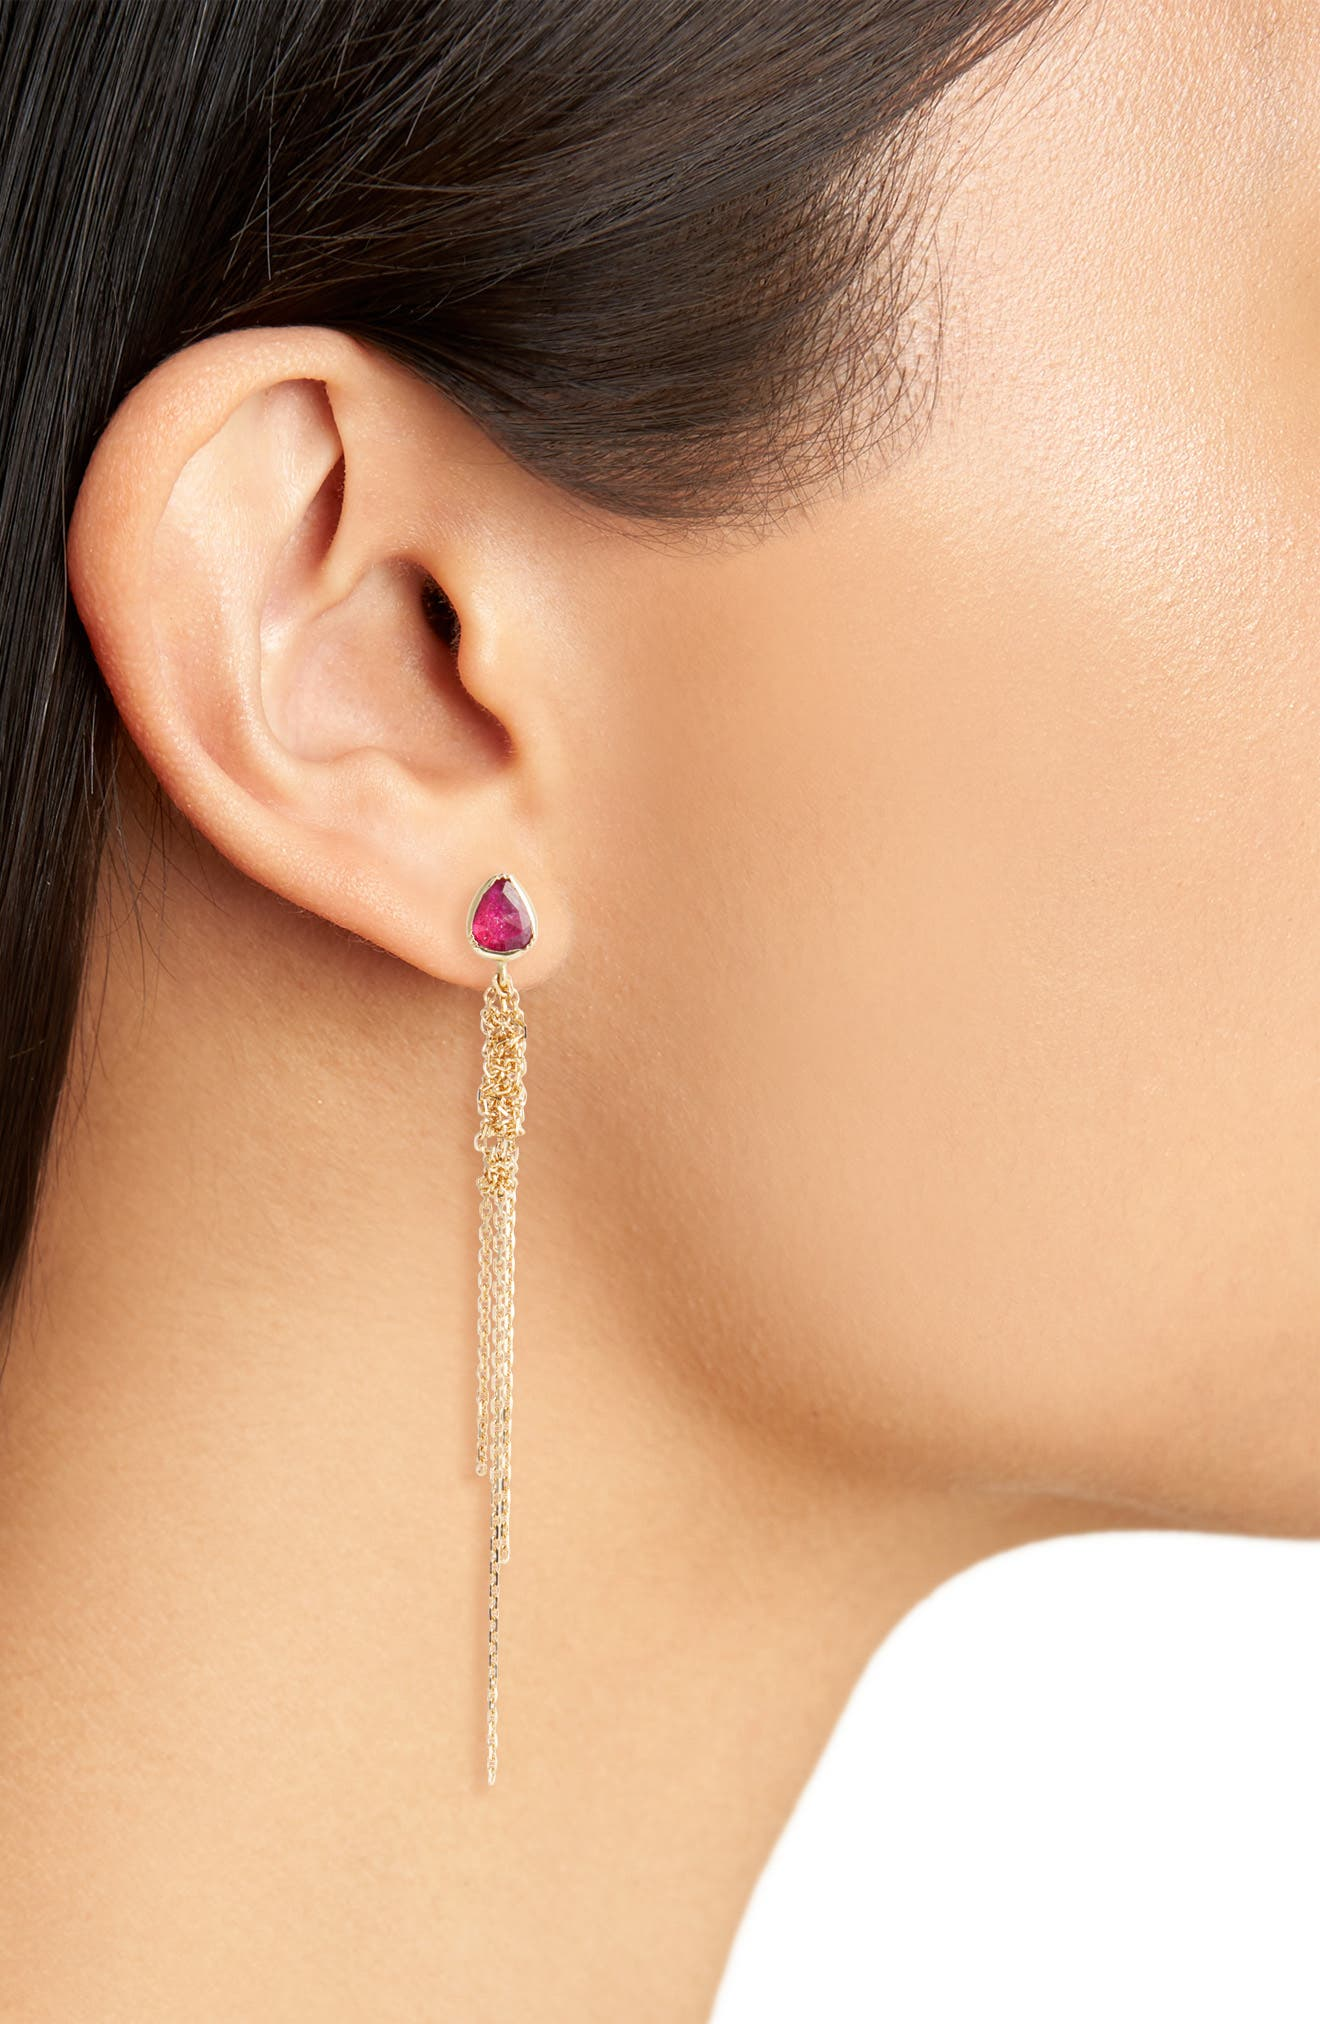 Waterfall Ruby Earrings,                             Alternate thumbnail 2, color,                             Gold